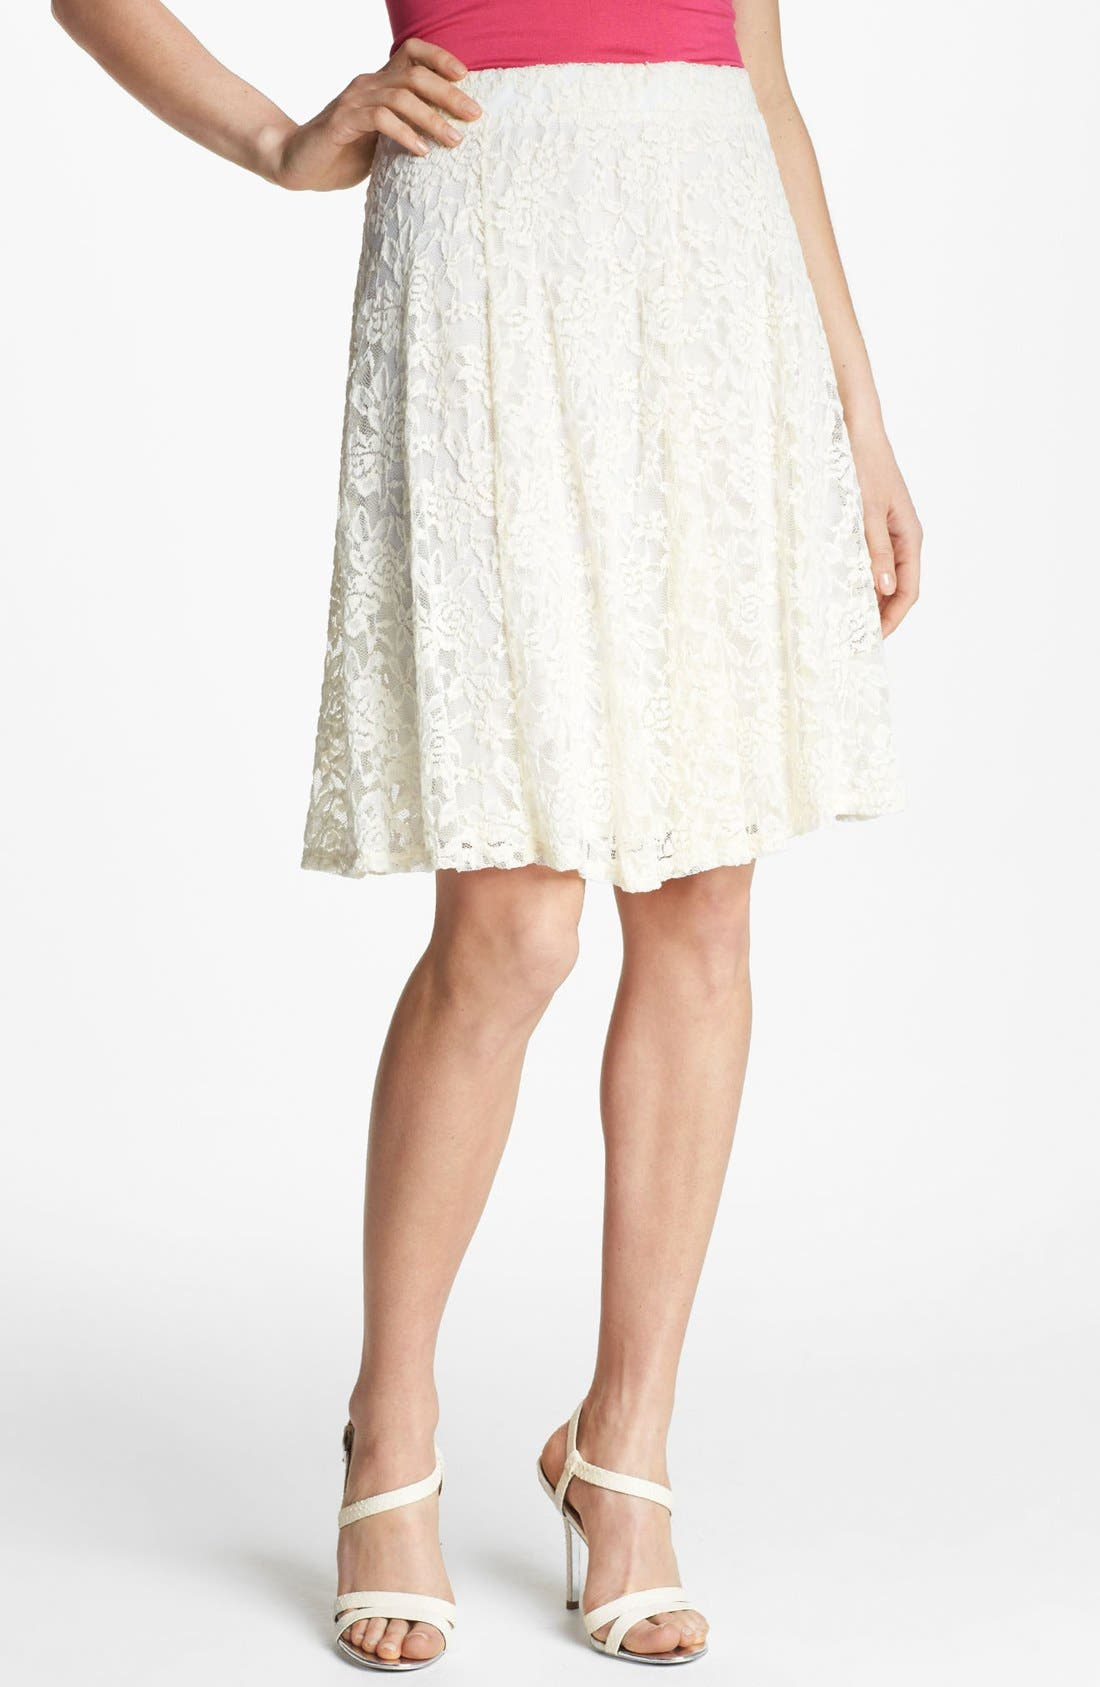 Alternate Image 1 Selected - Bobeau High Waist Lace Skirt